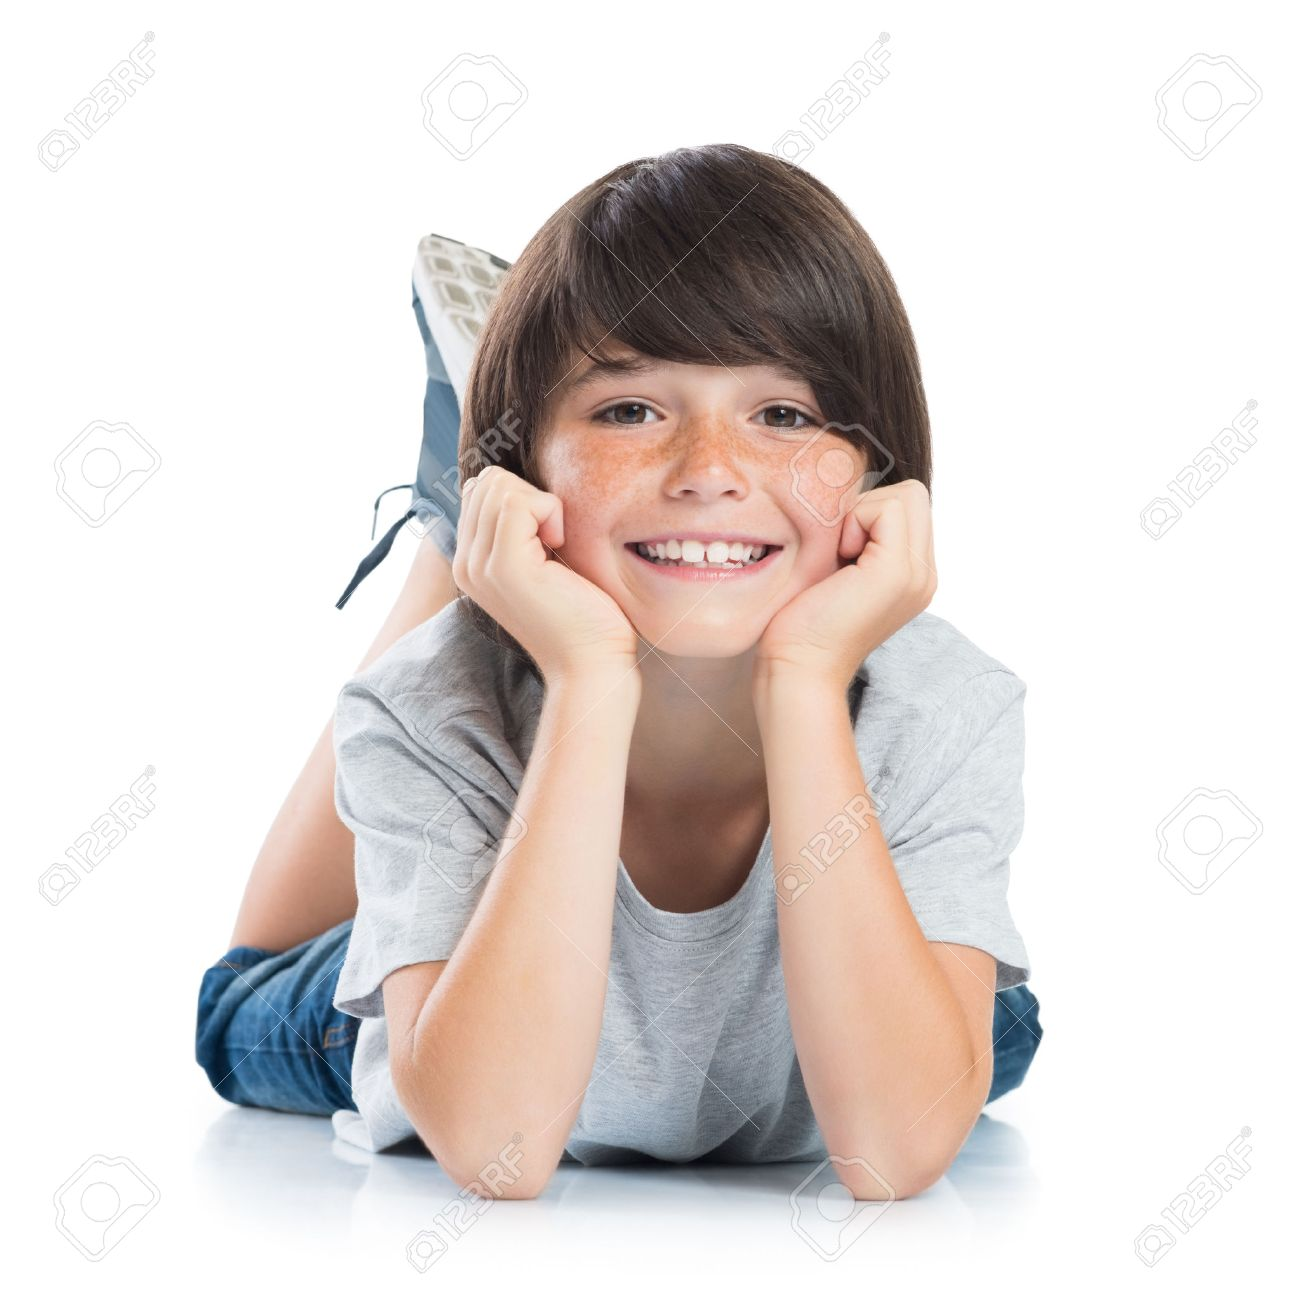 1d8c0e3b2a35 Closeup of smiling little boy with freckles lying on white background.  Happy cute male child lying on white floor and looking at camera.